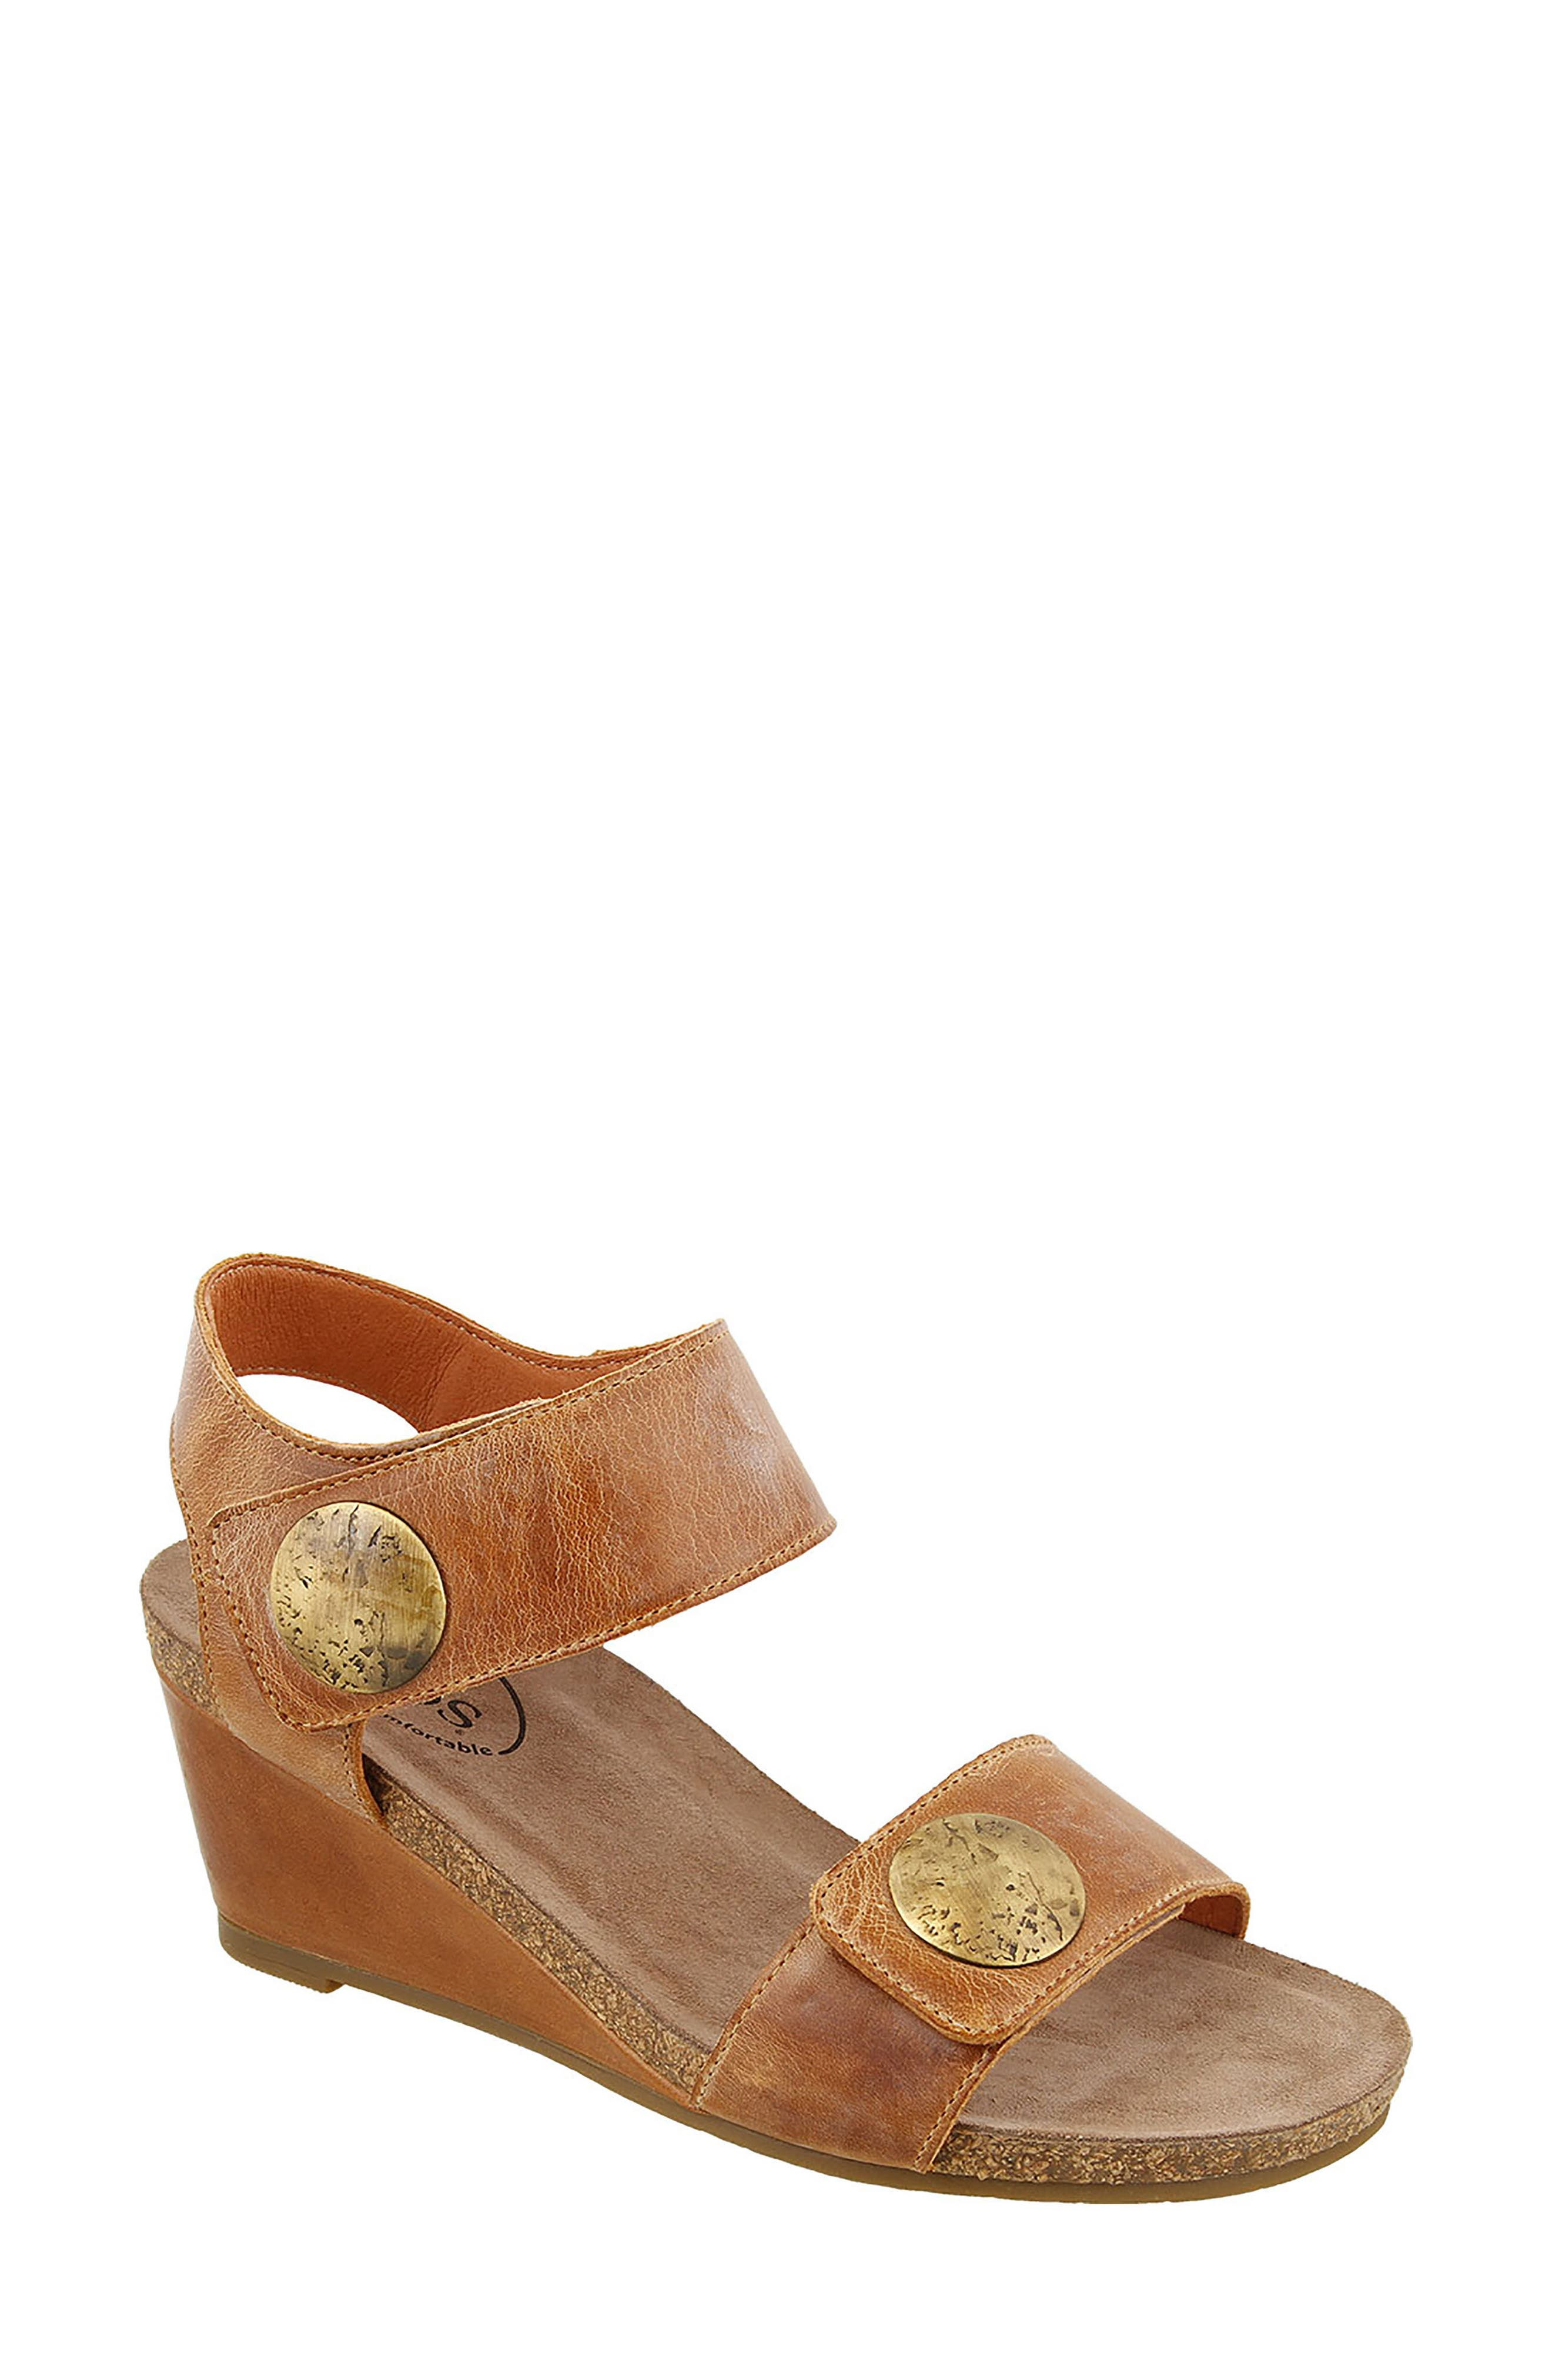 'Carousel 2' Wedge Sandal,                             Main thumbnail 1, color,                             Camel Suede